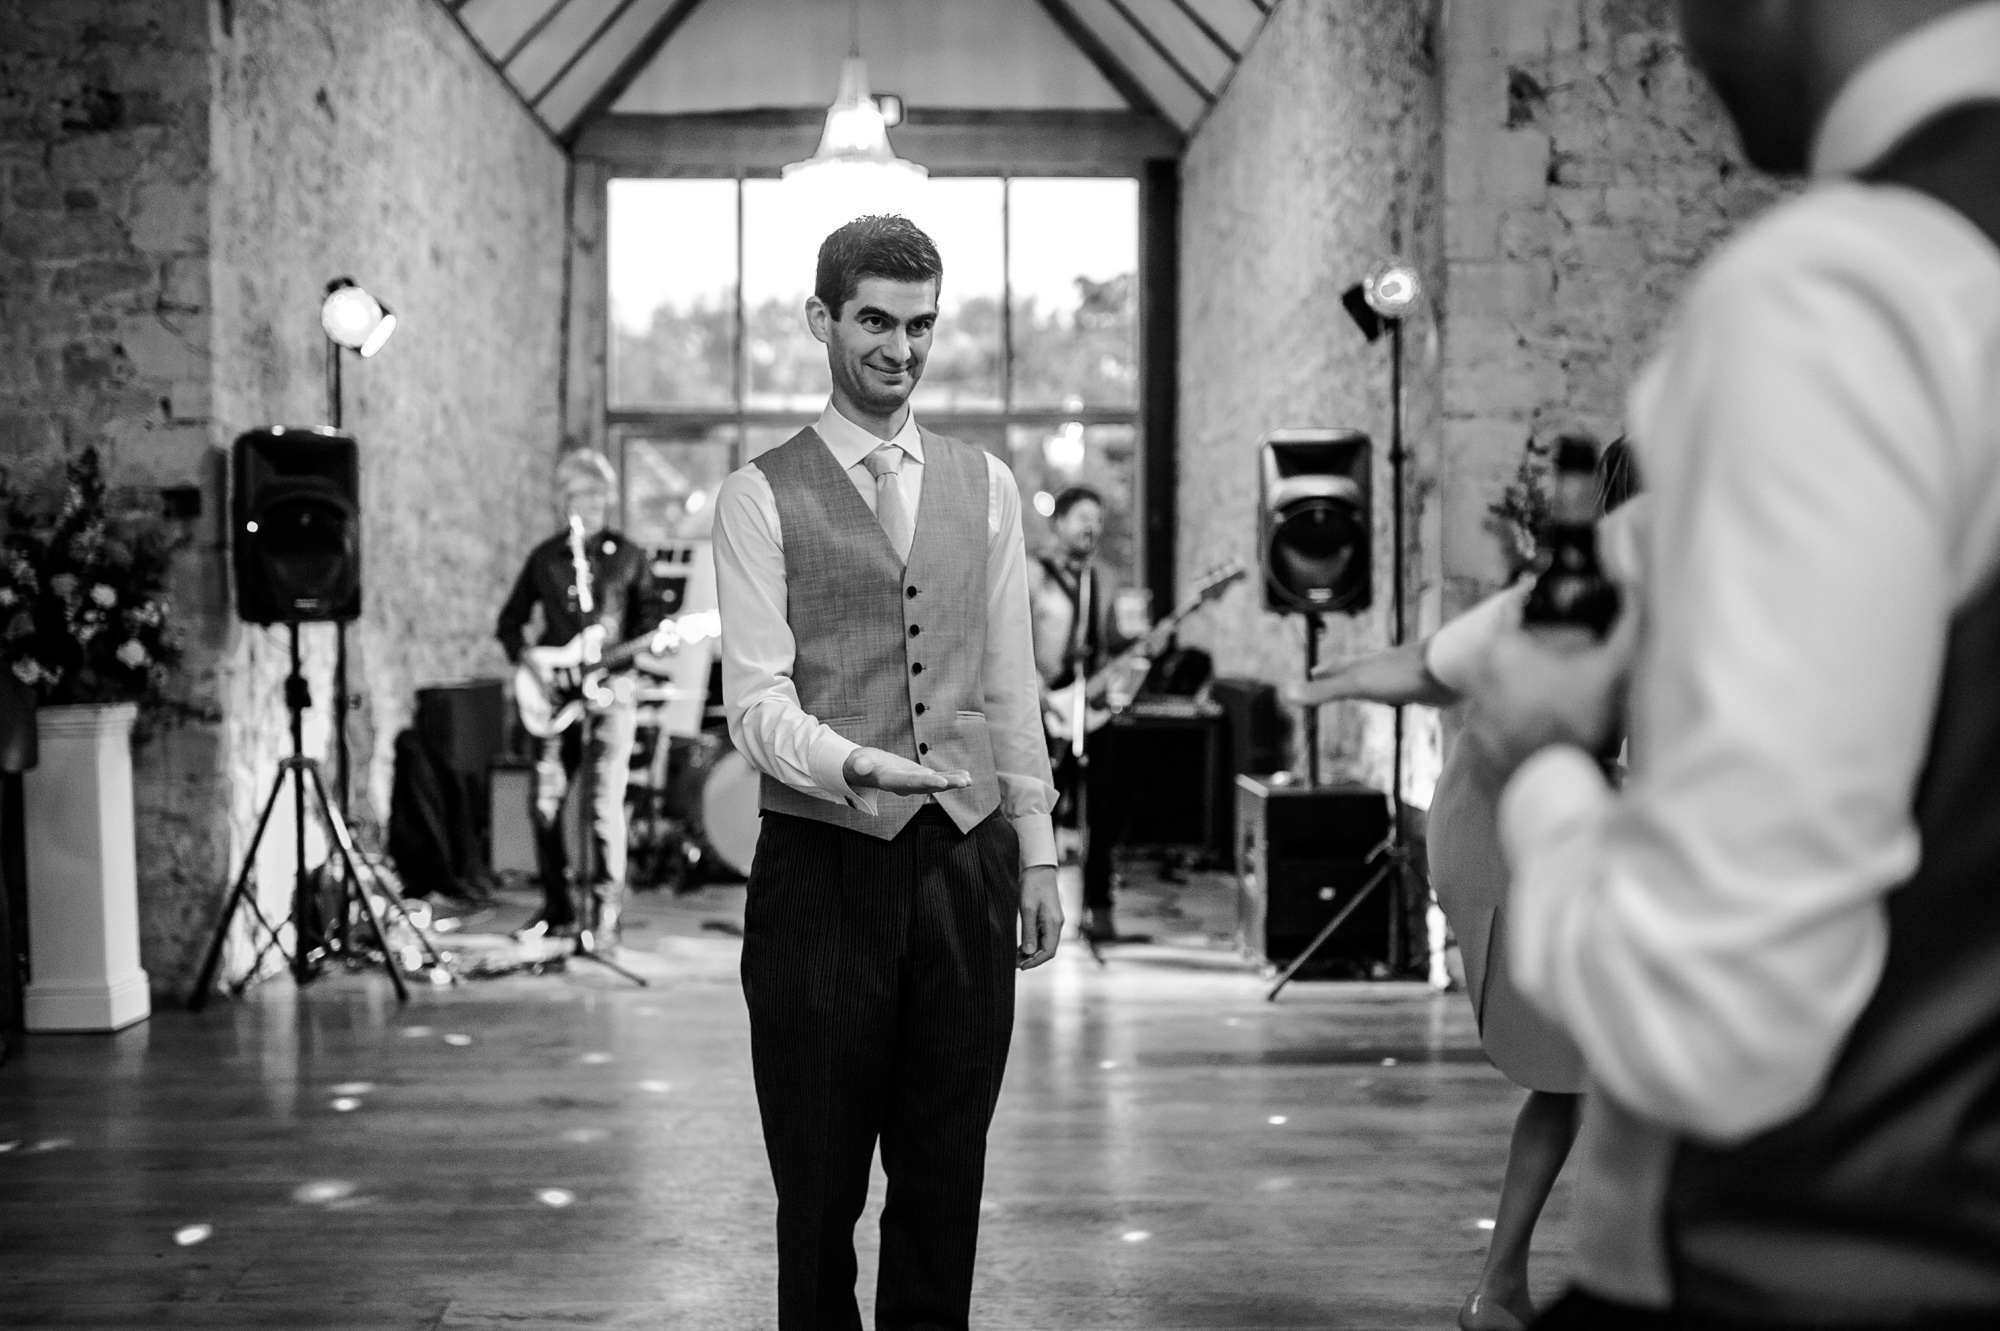 Notley Barn Wedding 26.10.18 35.jpg